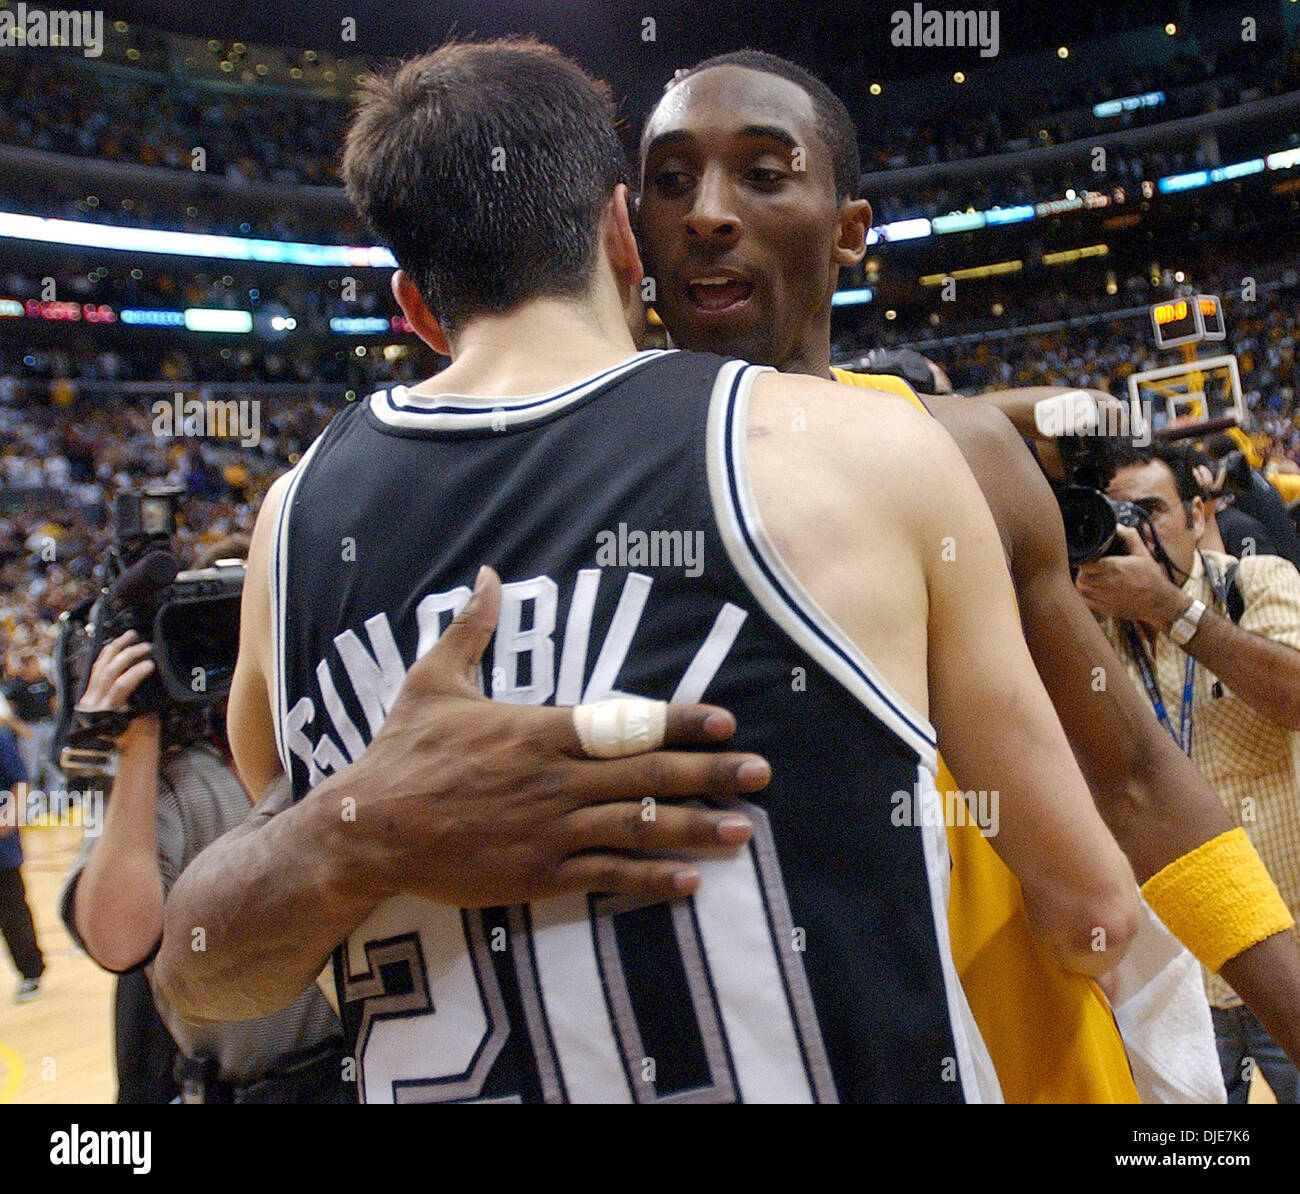 2004 Kobe Stock Photos & 2004 Kobe Stock Images